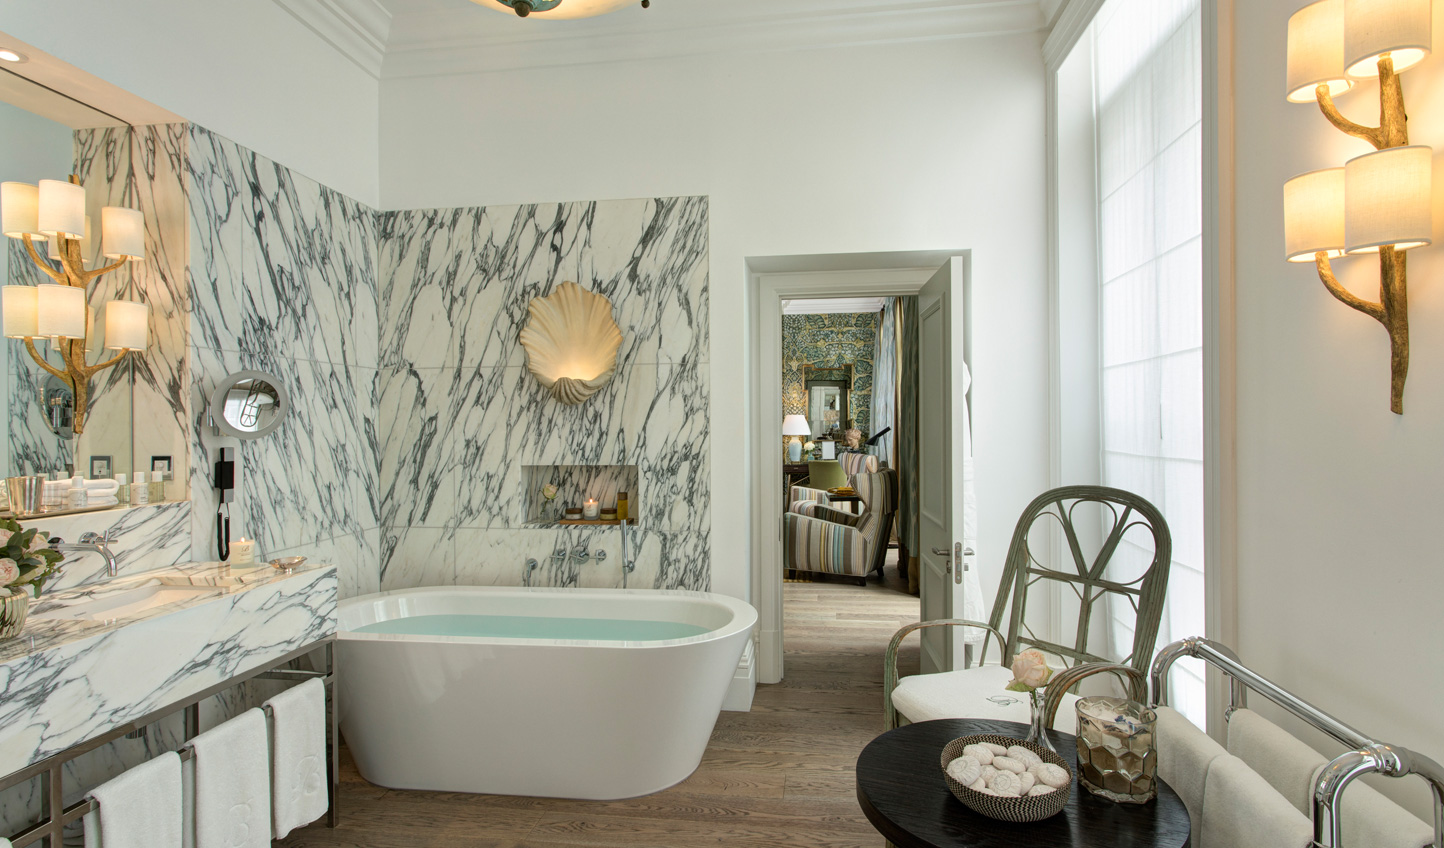 Exquisite marble bathrooms- only the best at Brown's